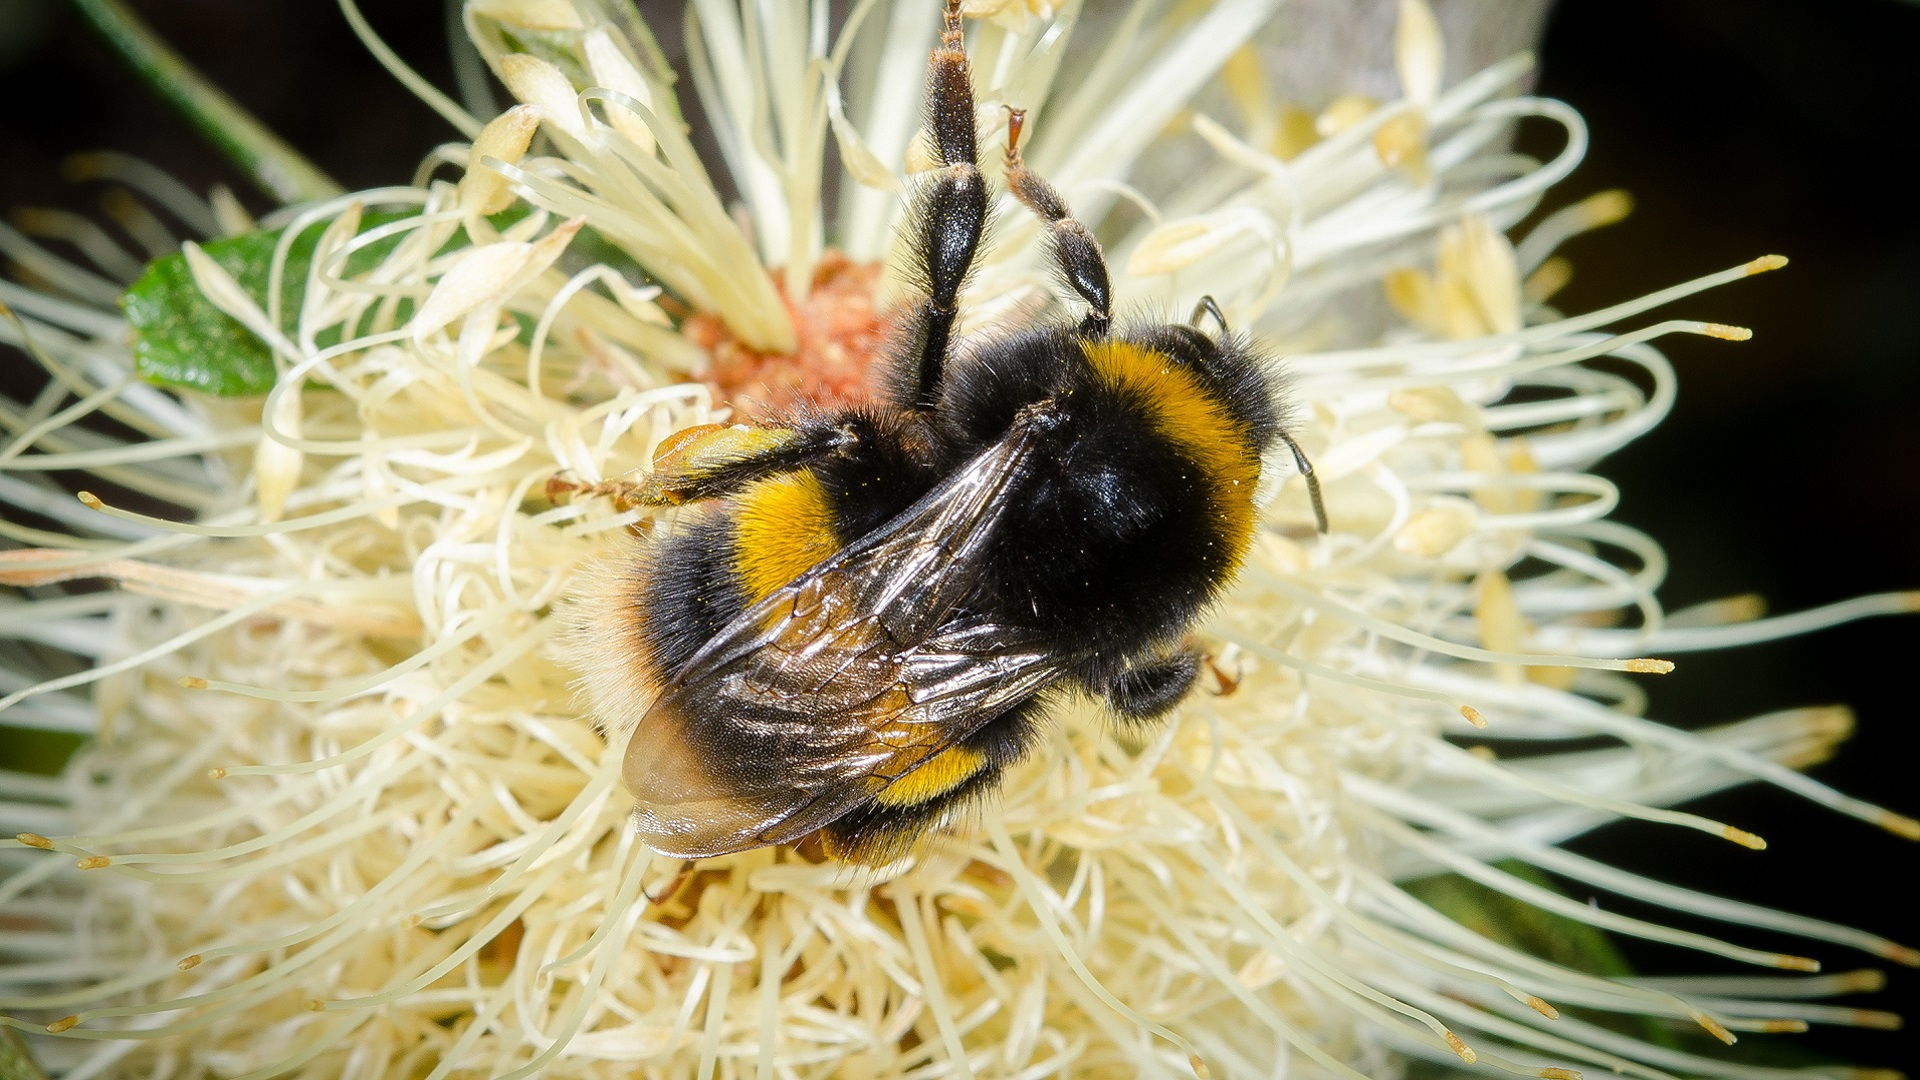 bees_non-native bees_insects